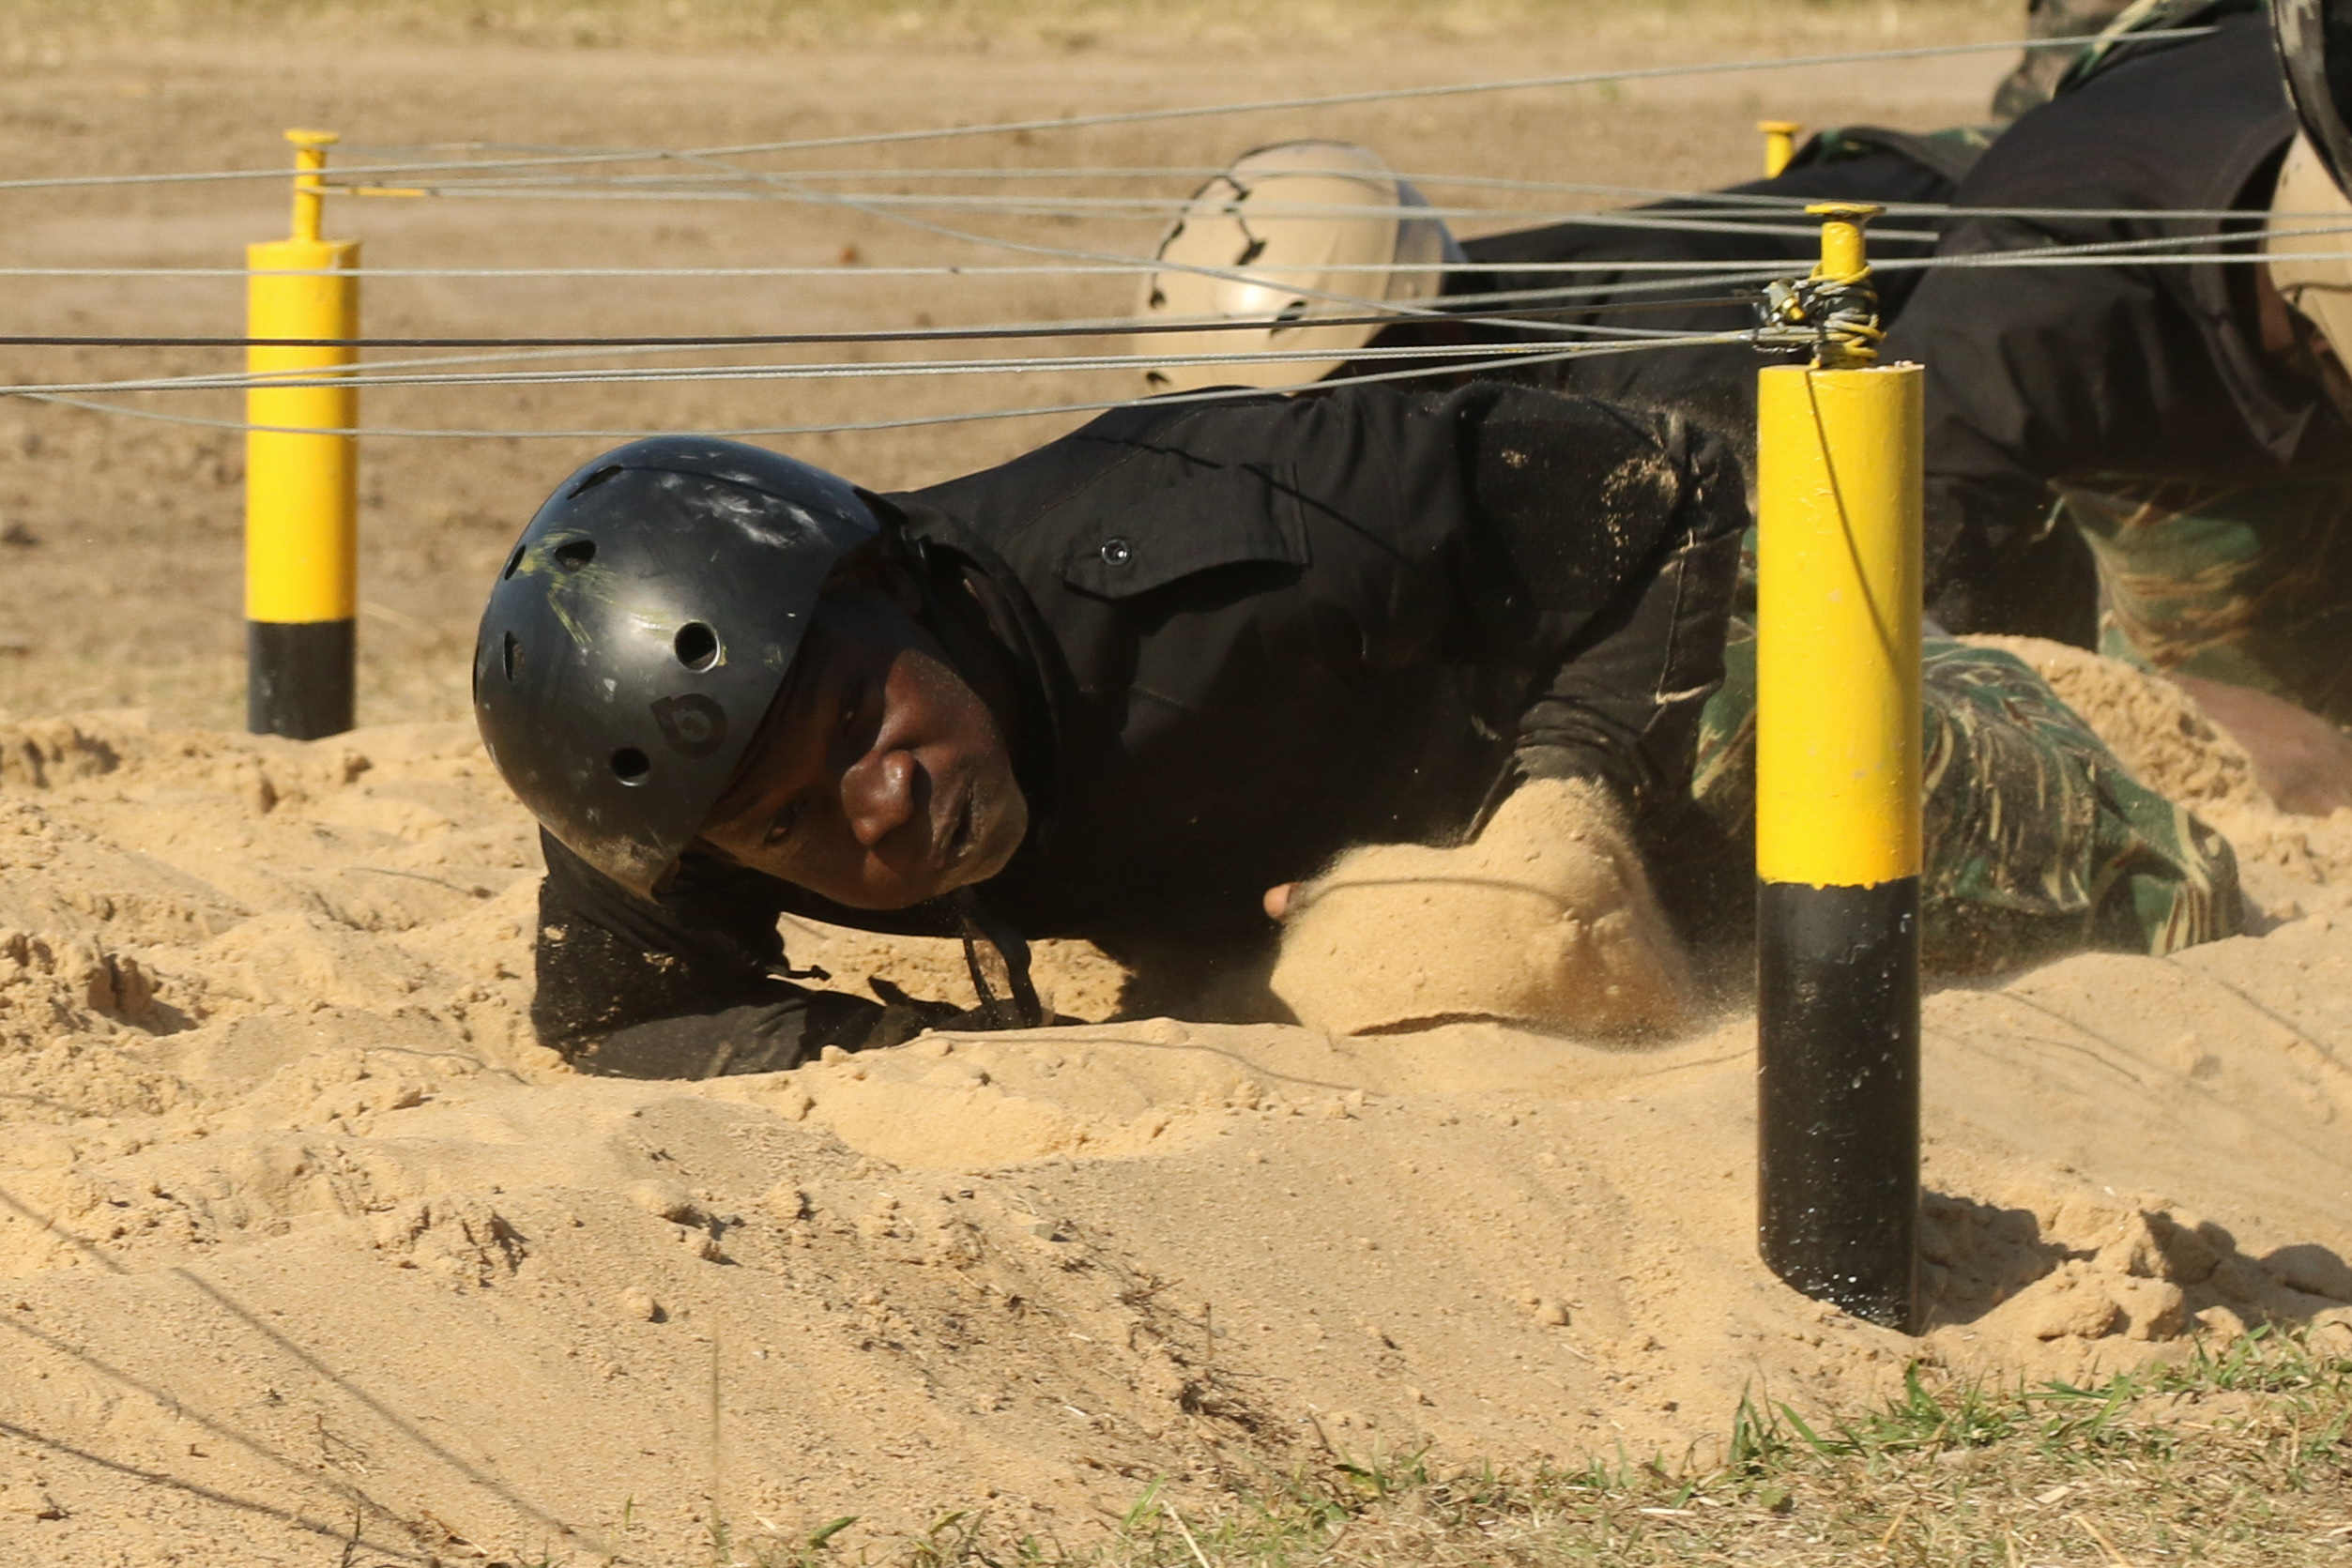 A Guyanese comando crawls beneath wires during a Fuerzas Comando obstacle course July 24, 2017, in Vista Alegre, Paraguay. This competition increases training knowledge and furthers interoperability between countries in the Western Hemisphere. (U.S. Army photo by Sgt. Joanna Bradshaw/Released)